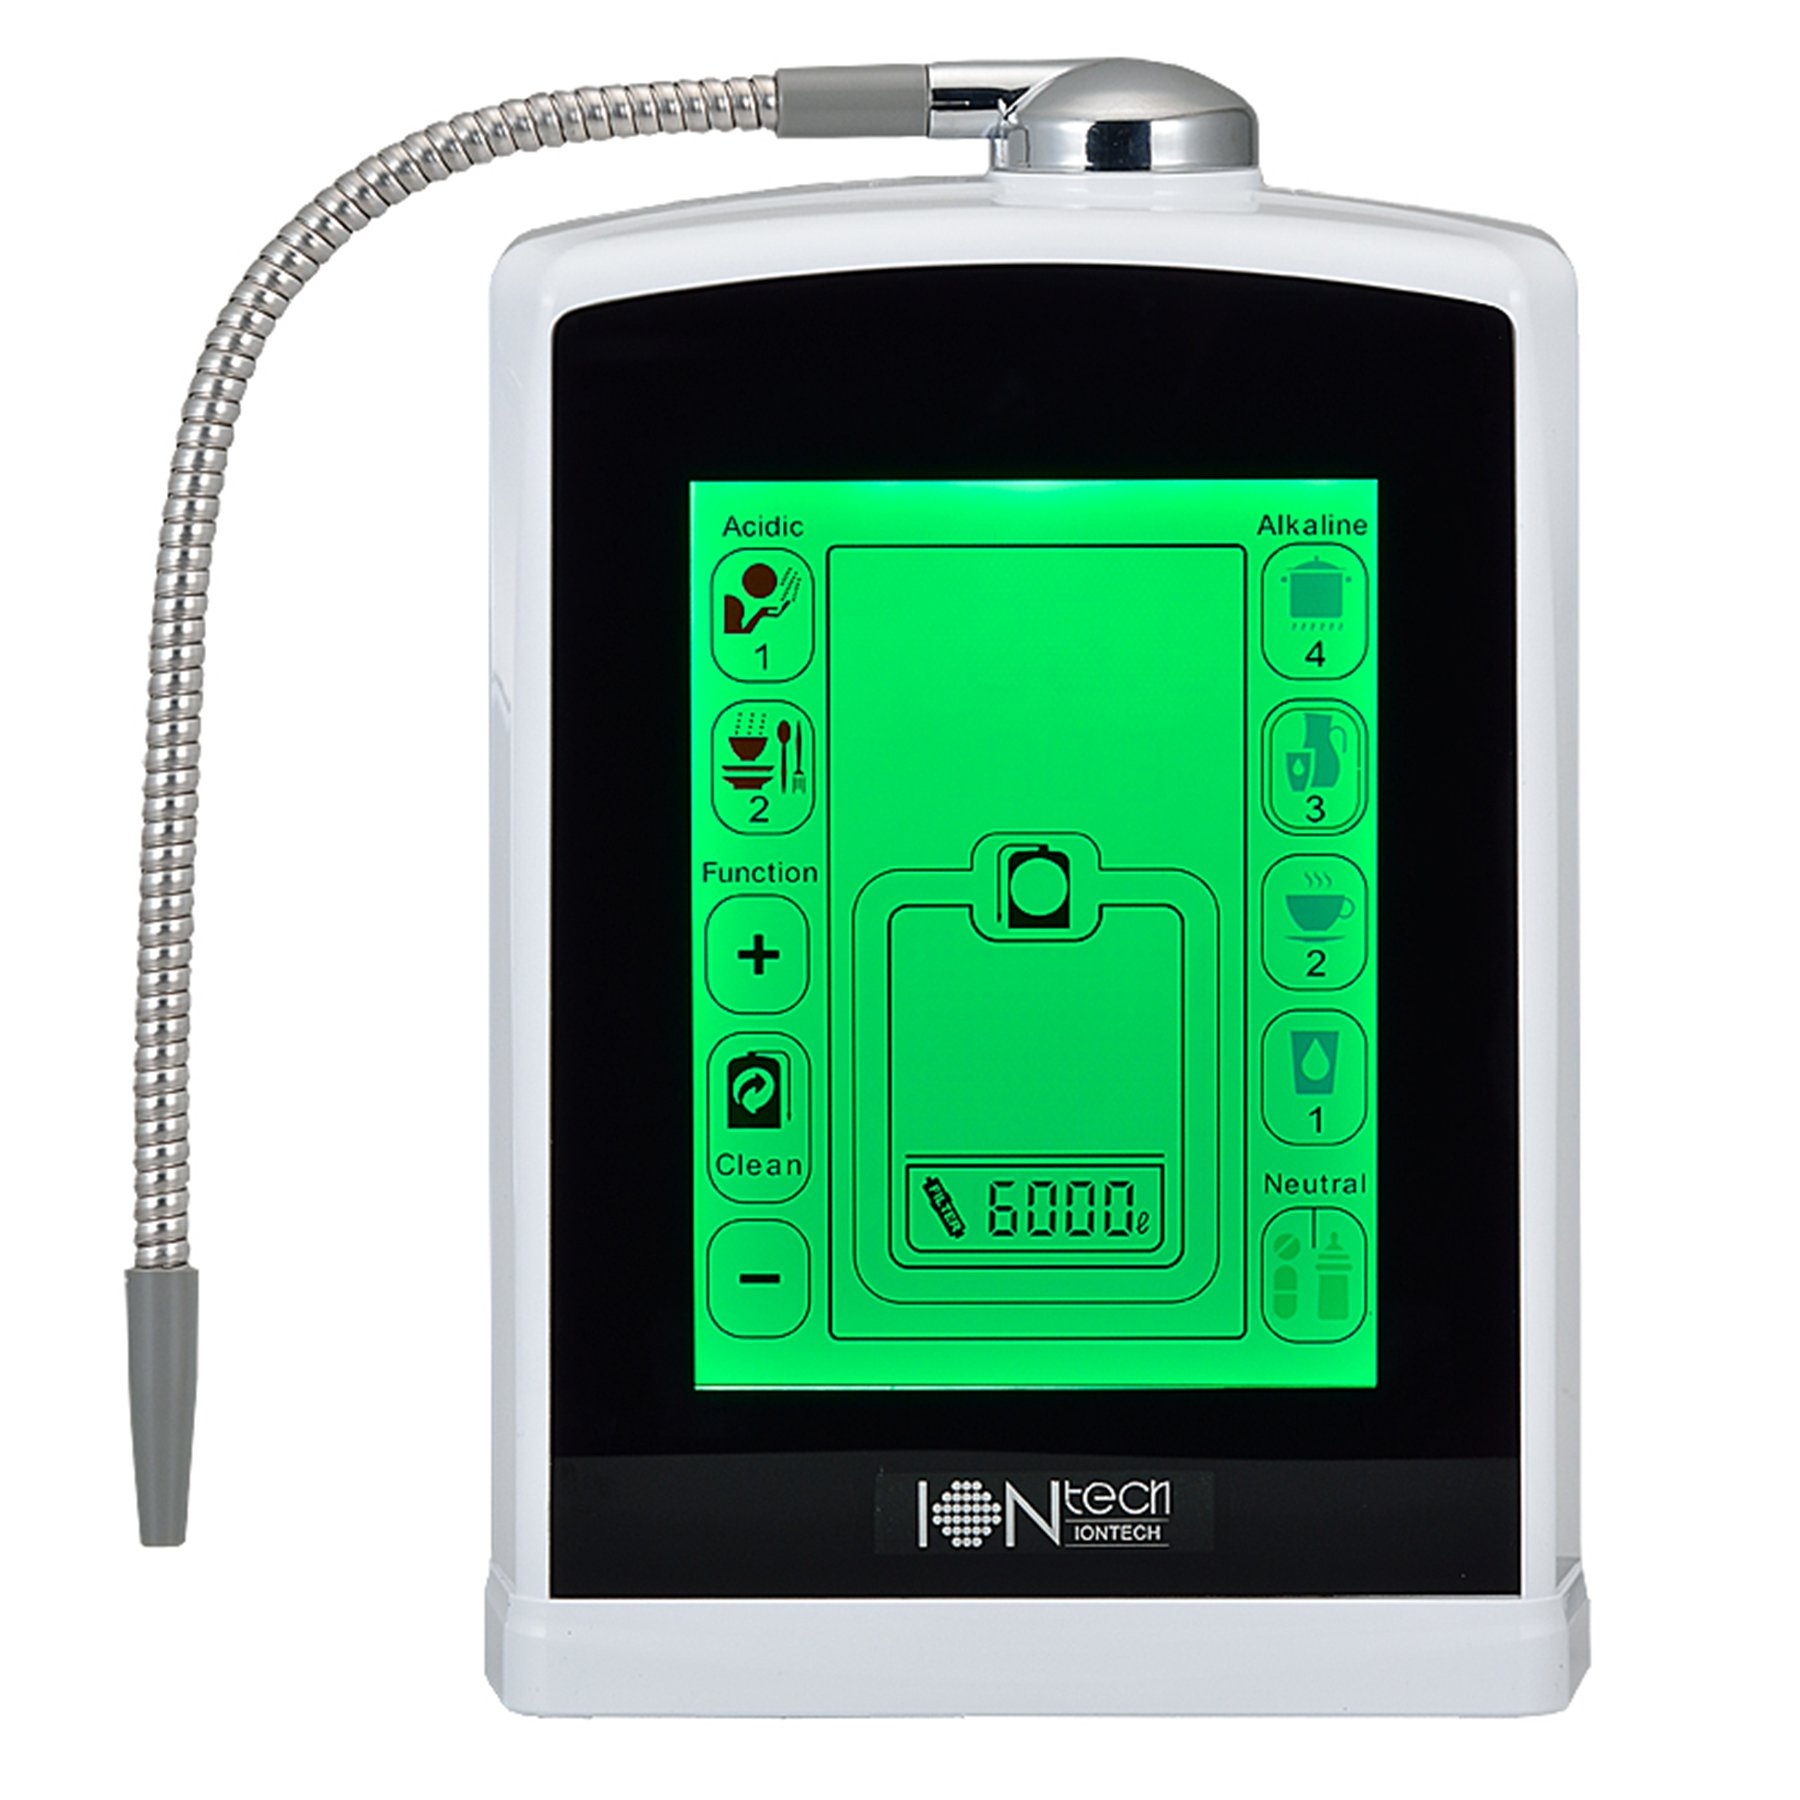 IONtech IT-588 Luxury Alkaline Water Ionizer Machine 7 pH Water Levels Japan Made Platinum Titanium Electrolysis Plates USA Made NSF Certified Activated Carbon Filter PH Test Included by IntelGadgets